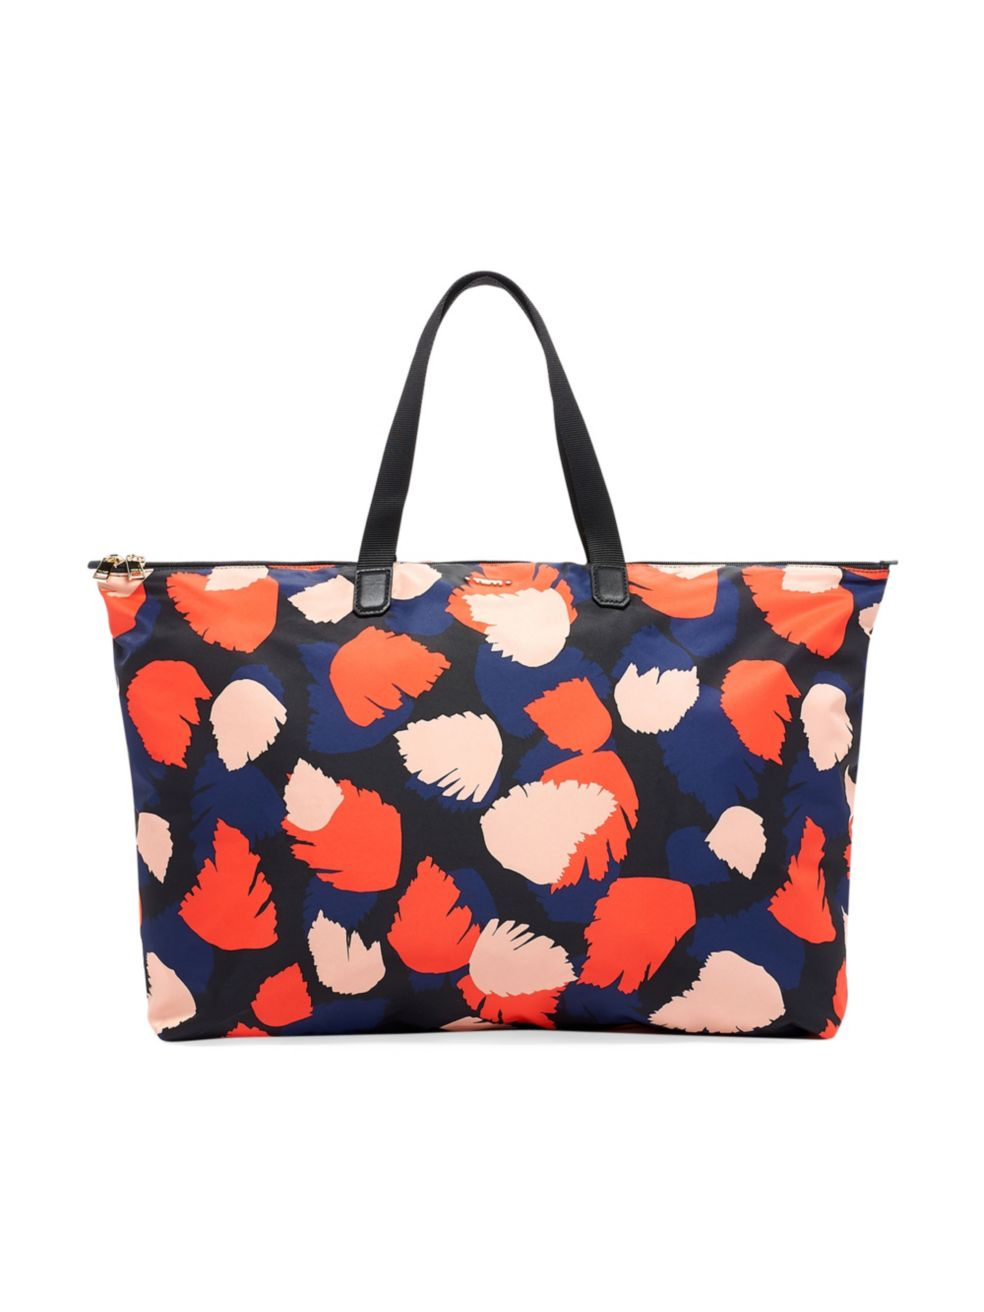 Printed Tote, $70 at Saks Fifth Avenue